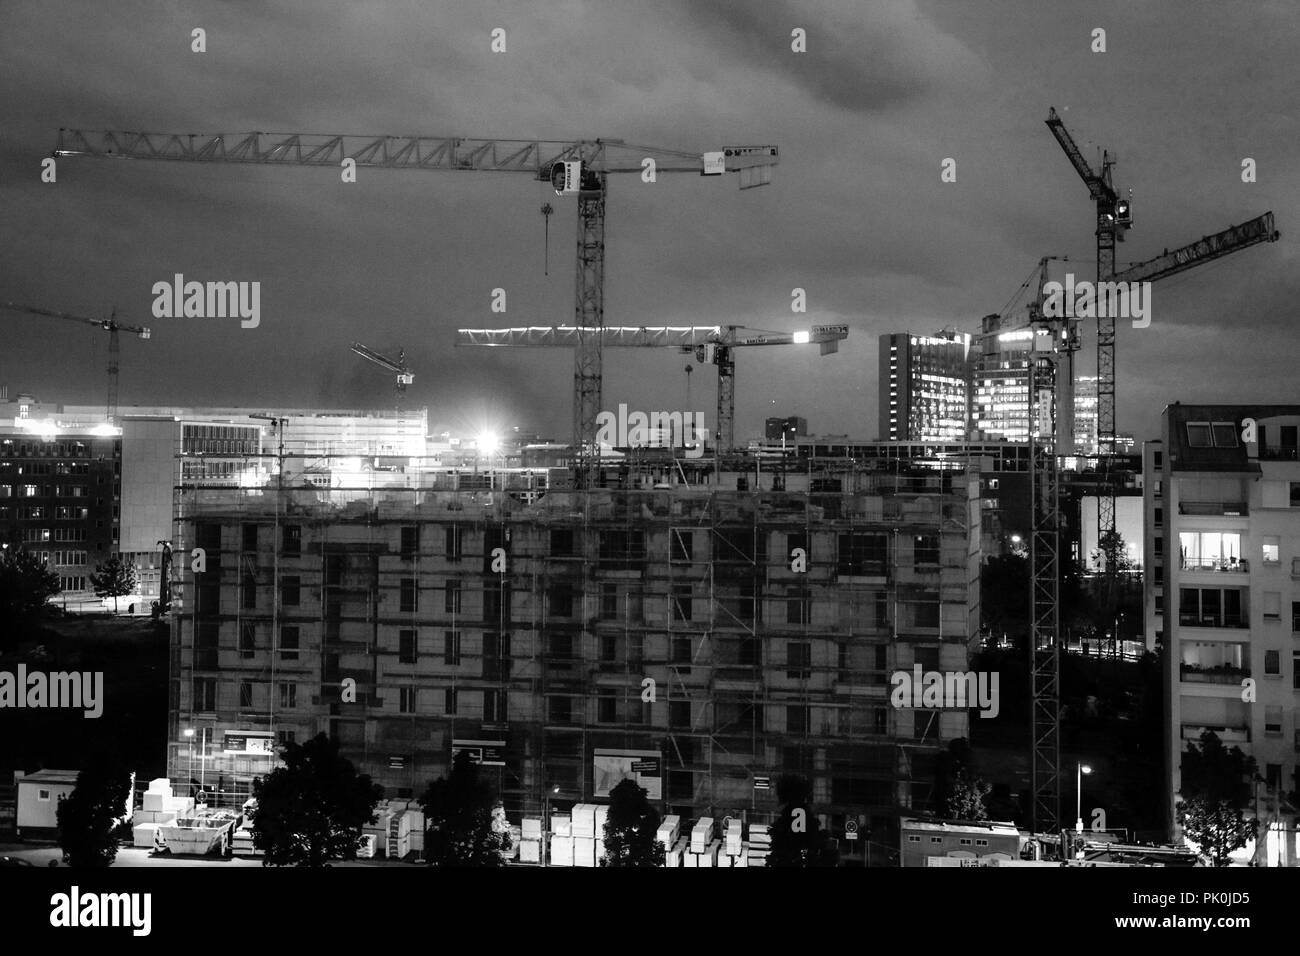 Constant 24-7 construction work in the old East Berlin now takes place, bringing two halves of one city united again as one - Stock Image